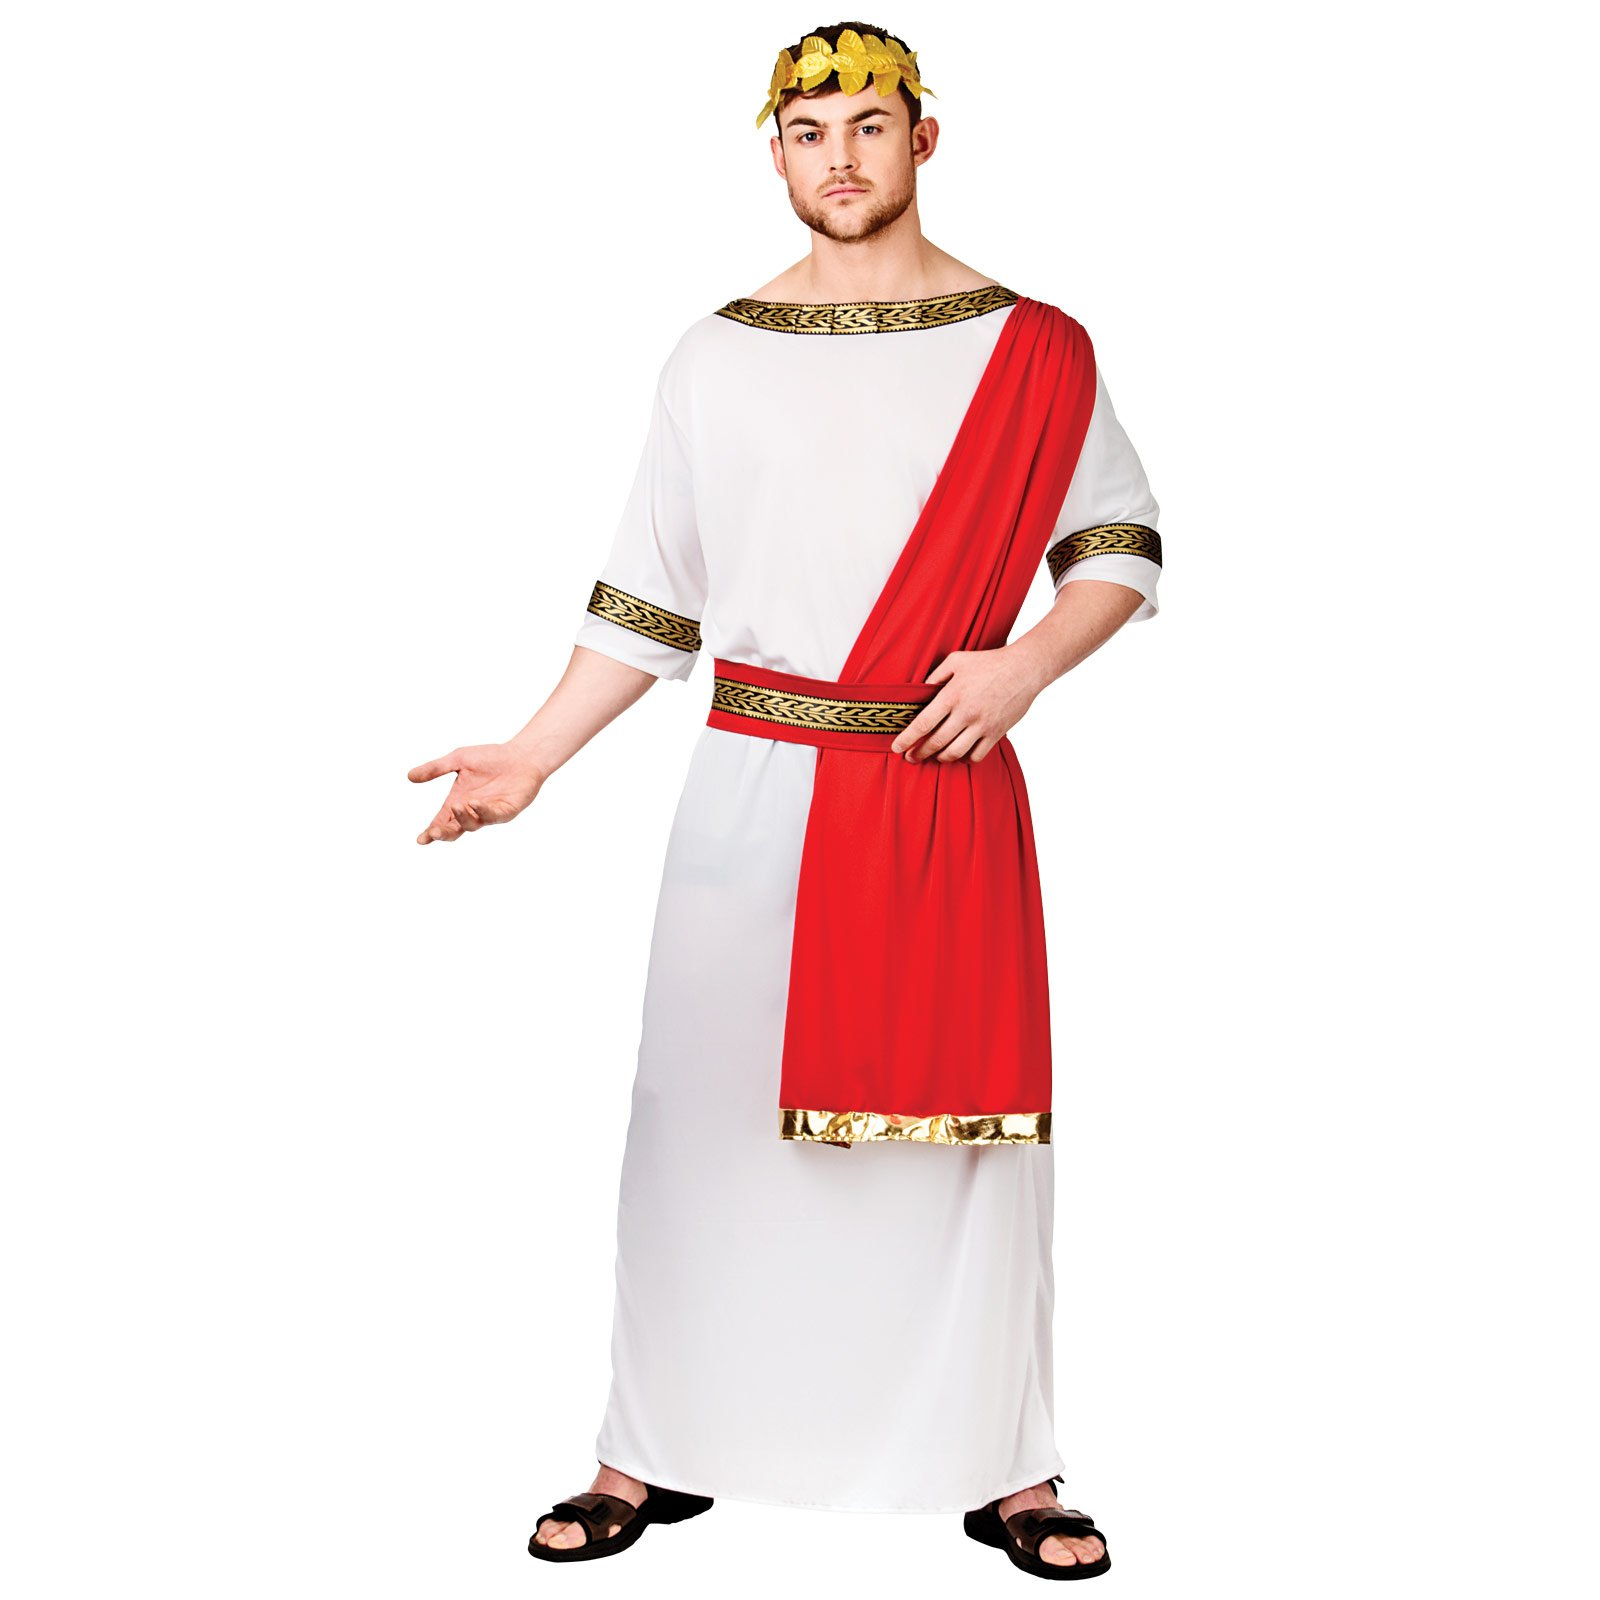 Adults Mens Roman Emperor Fancy Dress Up Party Halloween Costume Outfit New  sc 1 st  Amazon UK & Roman Fancy Dress: Amazon.co.uk